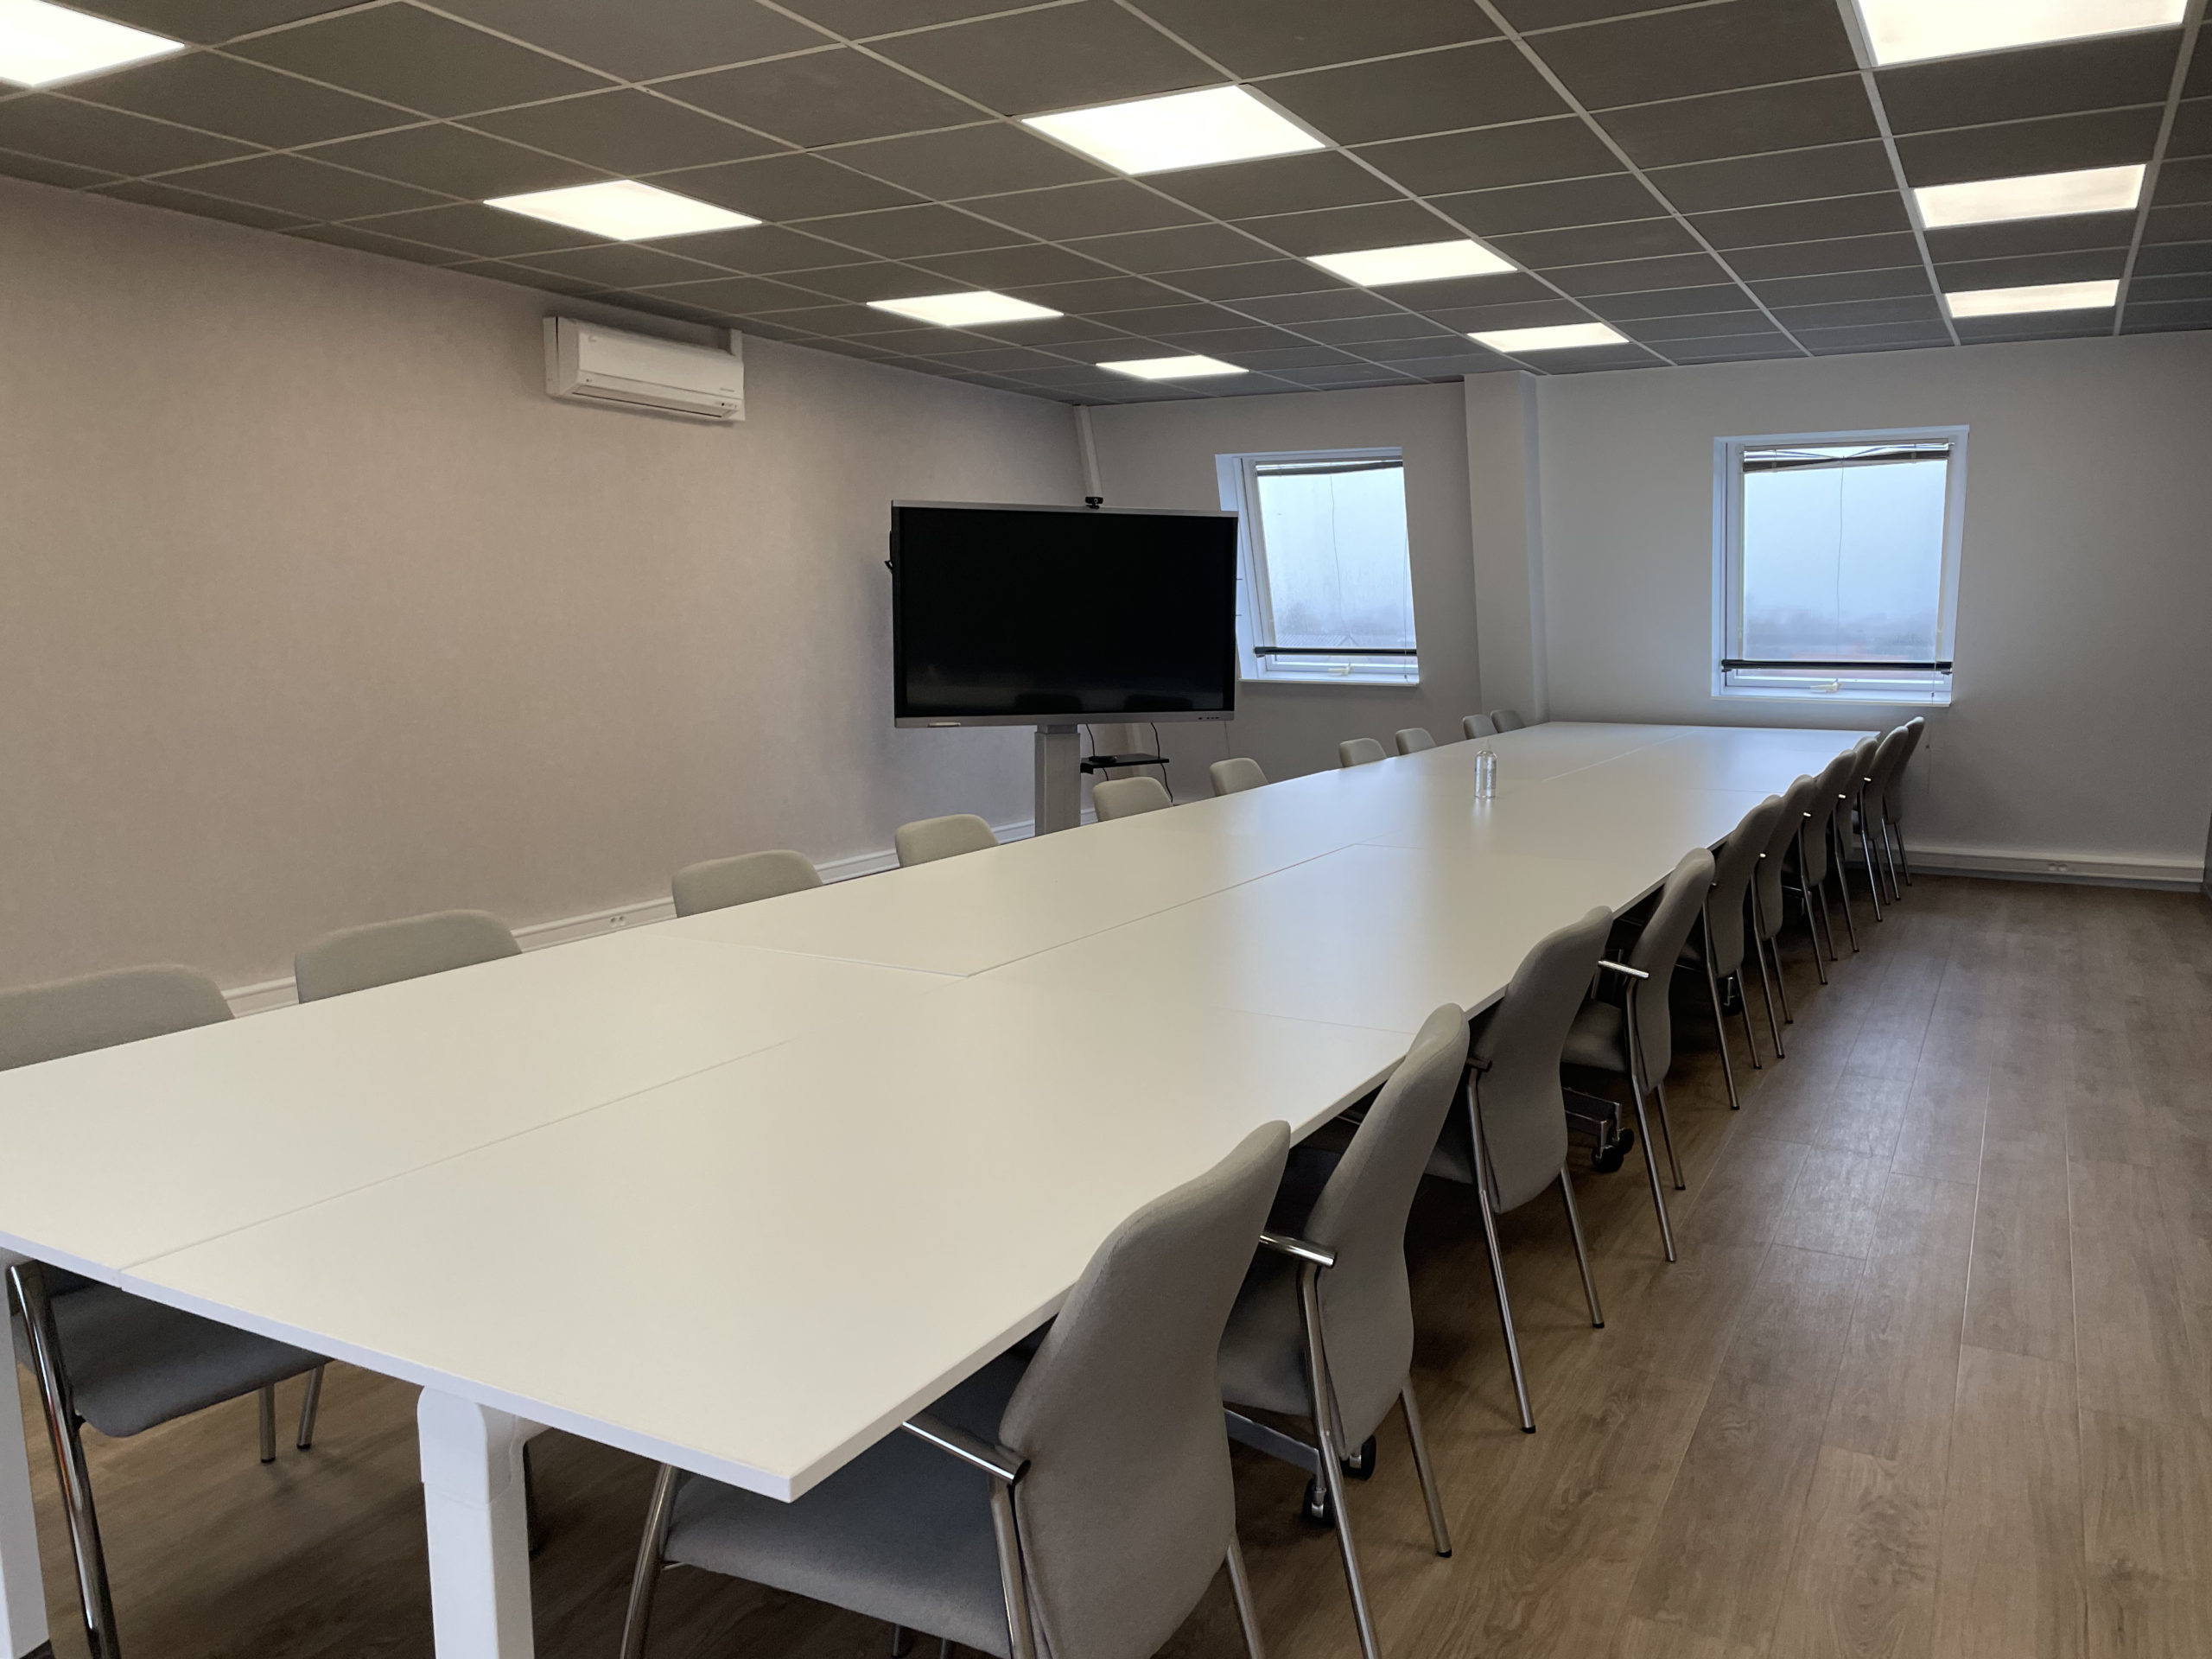 SLG - Coworking space